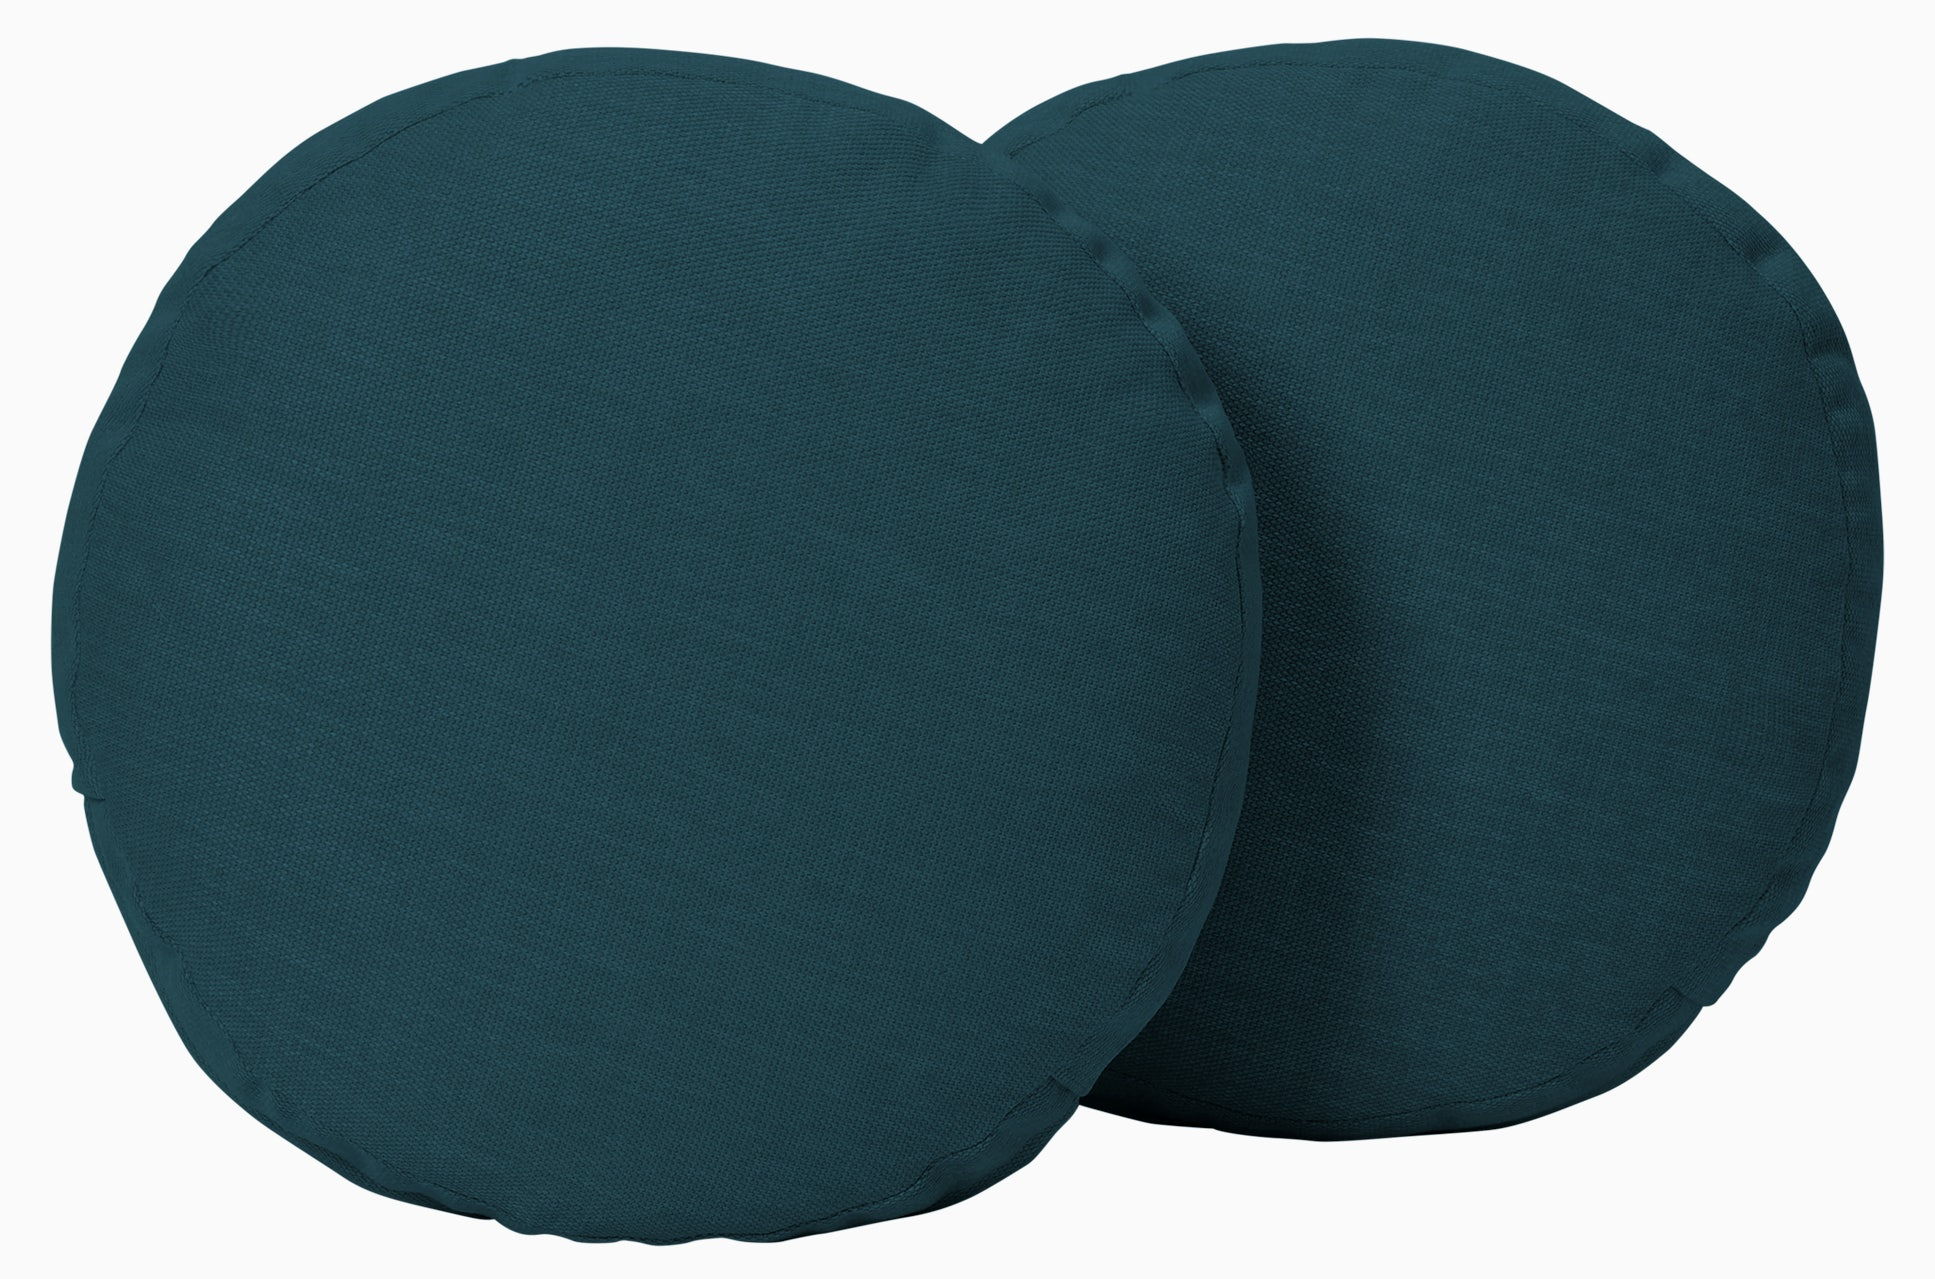 decorative round pillows %28set 2%29 sunbrella premier lagoon